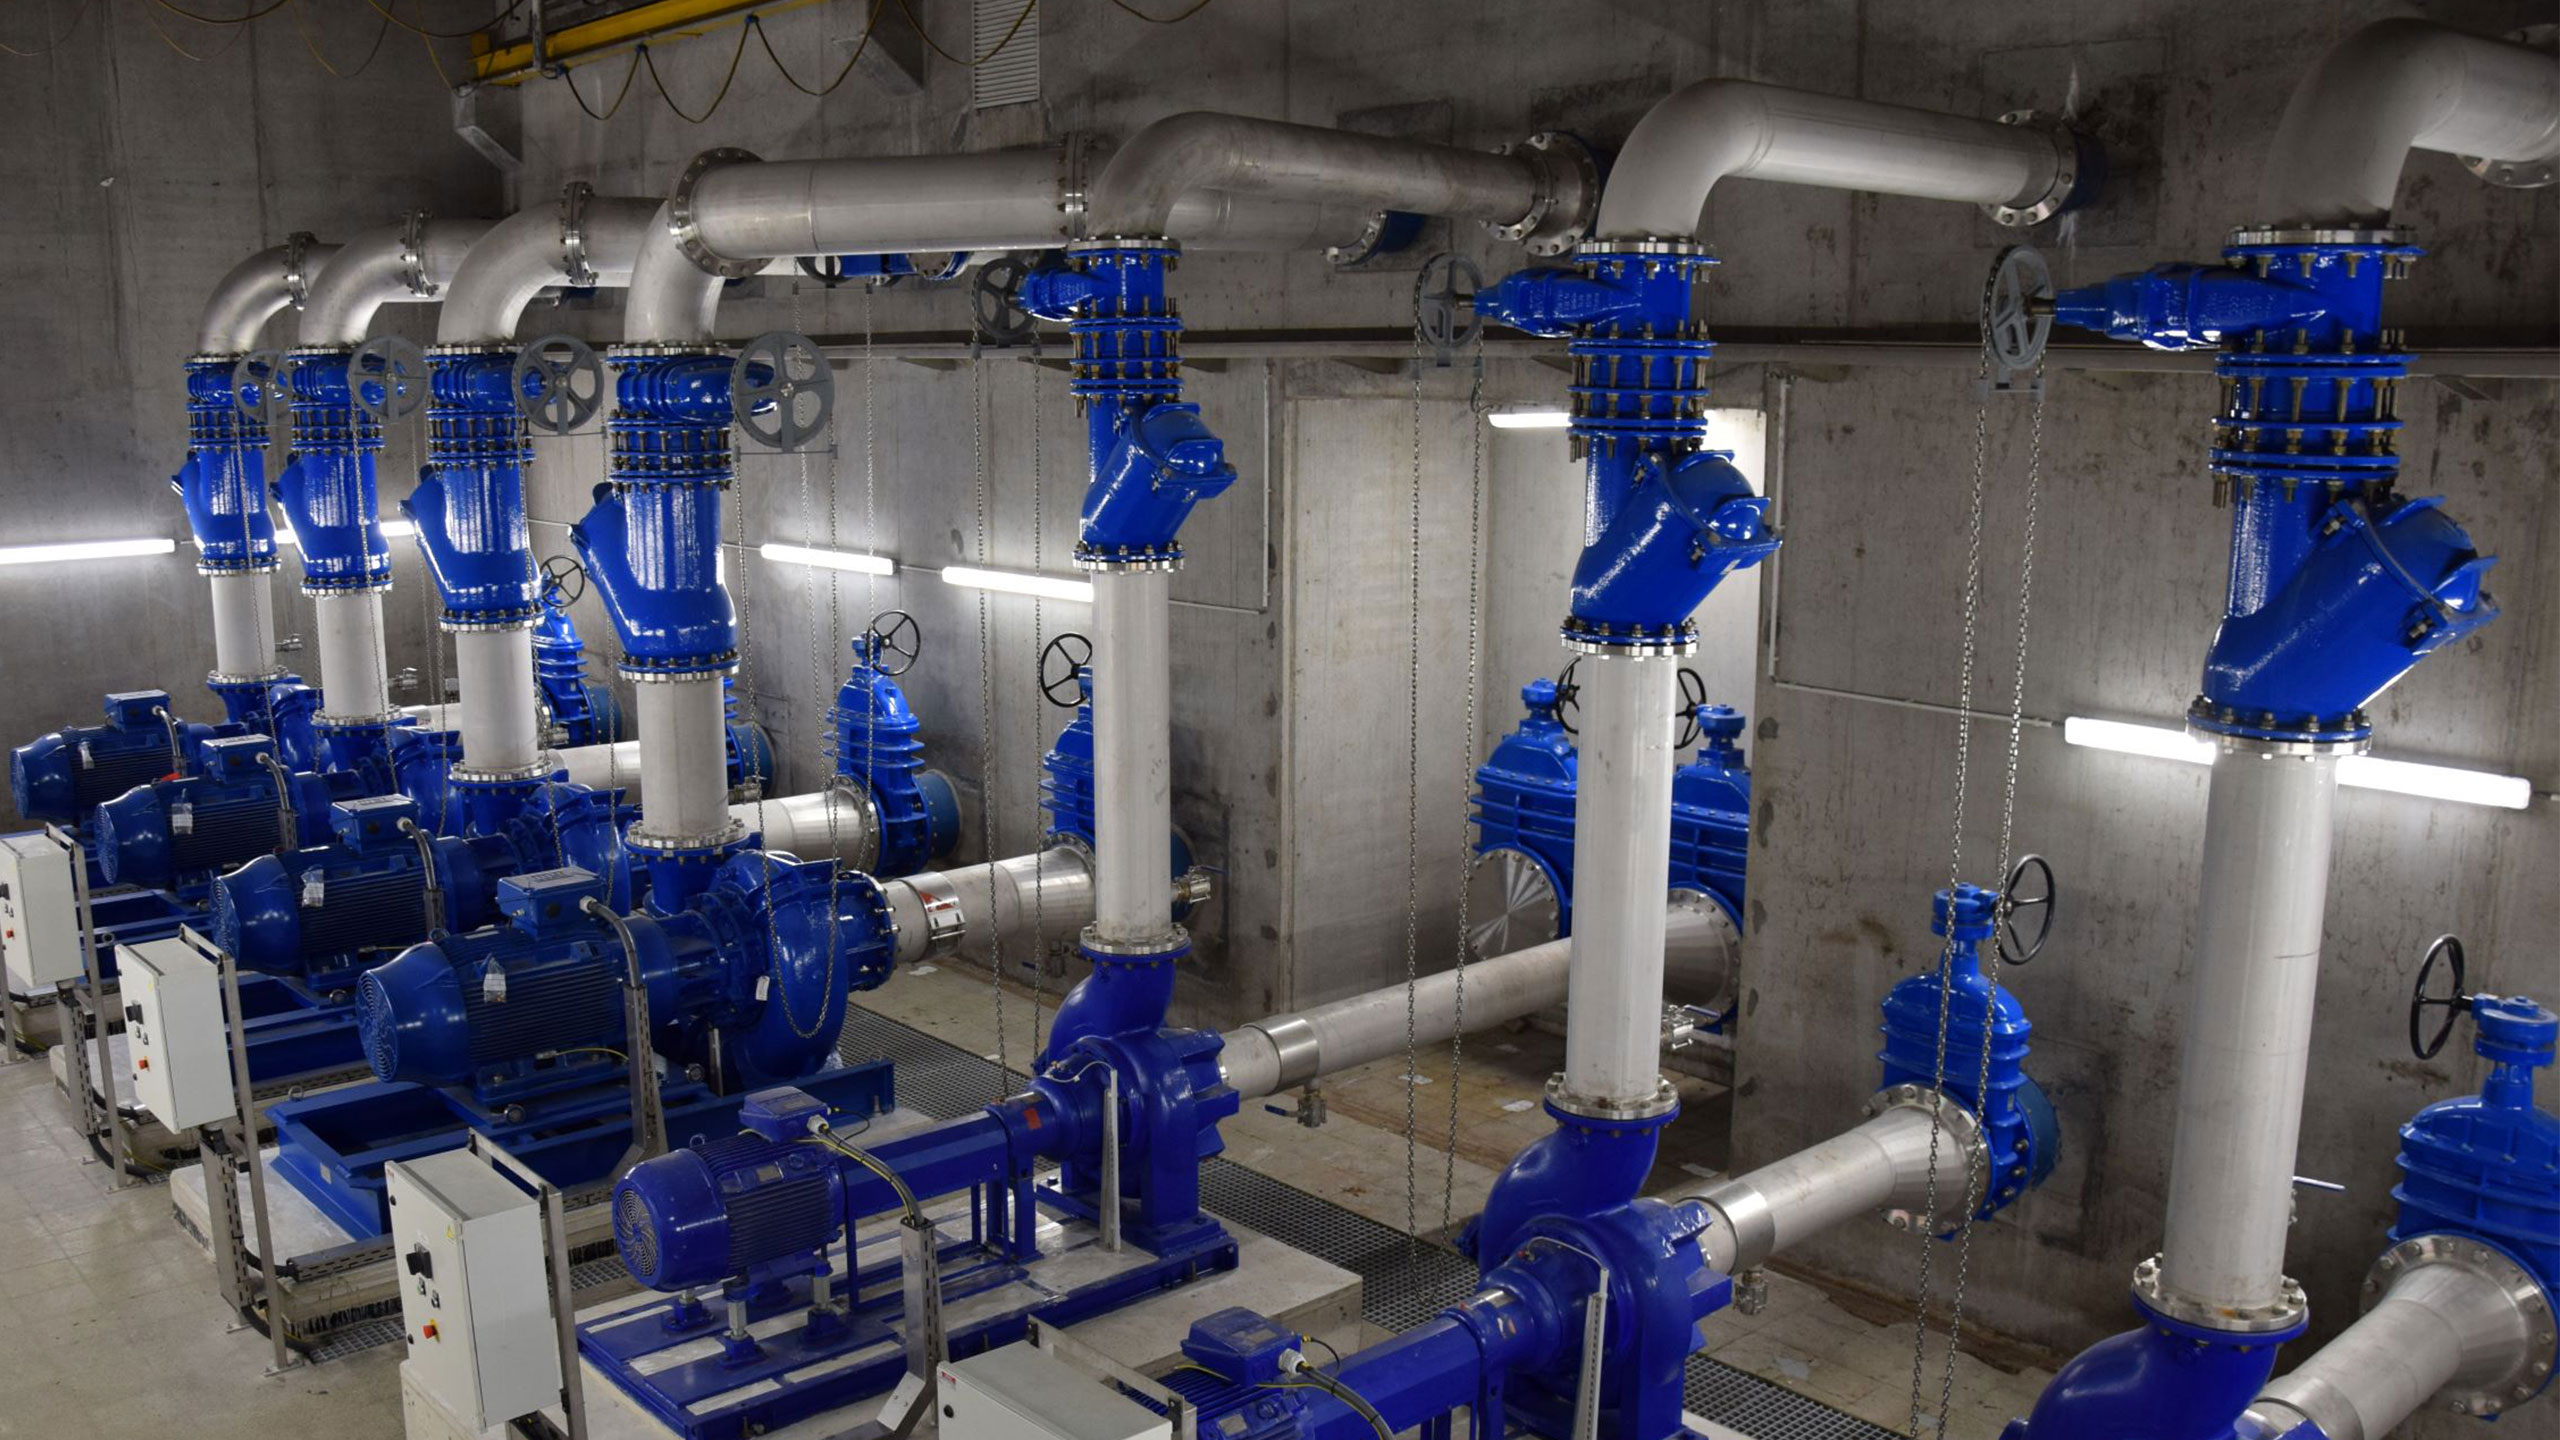 AVK valves at wastewater pumping station Sint-Kruis in Brugge, Belgium